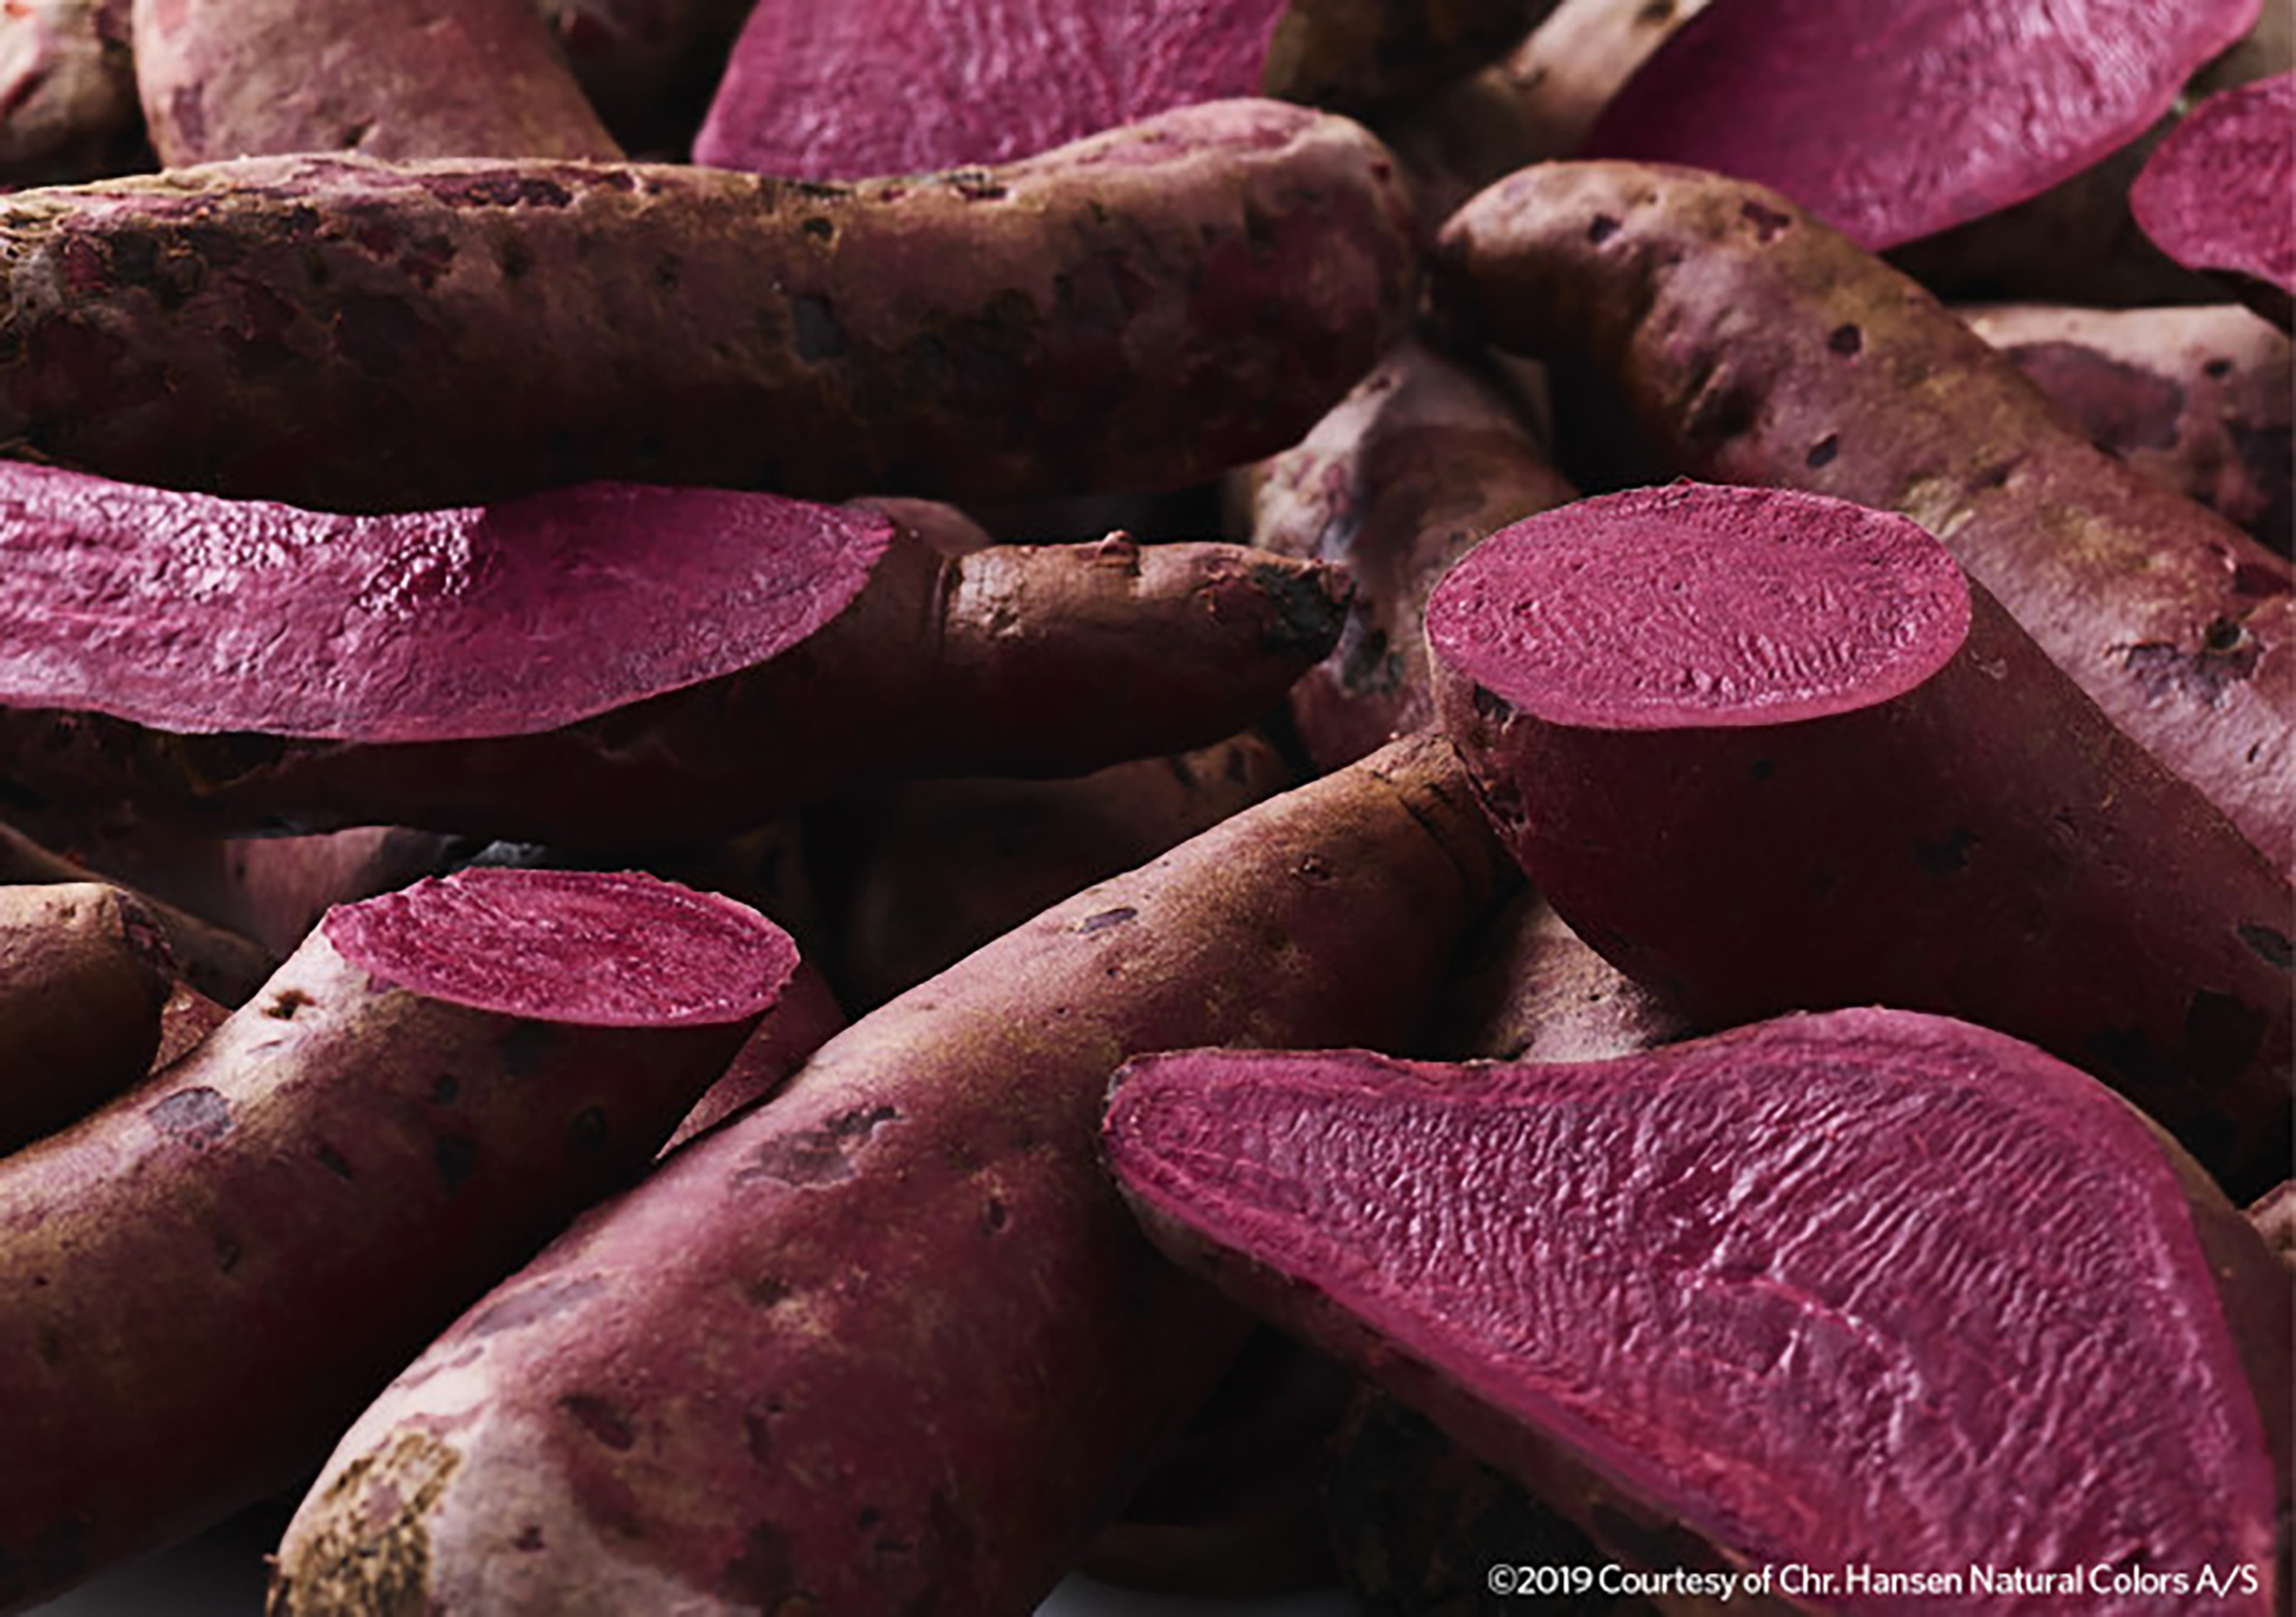 There's a Brand-New Sweet Potato Variety on the Market—And It's a Stunning Shade of Magenta